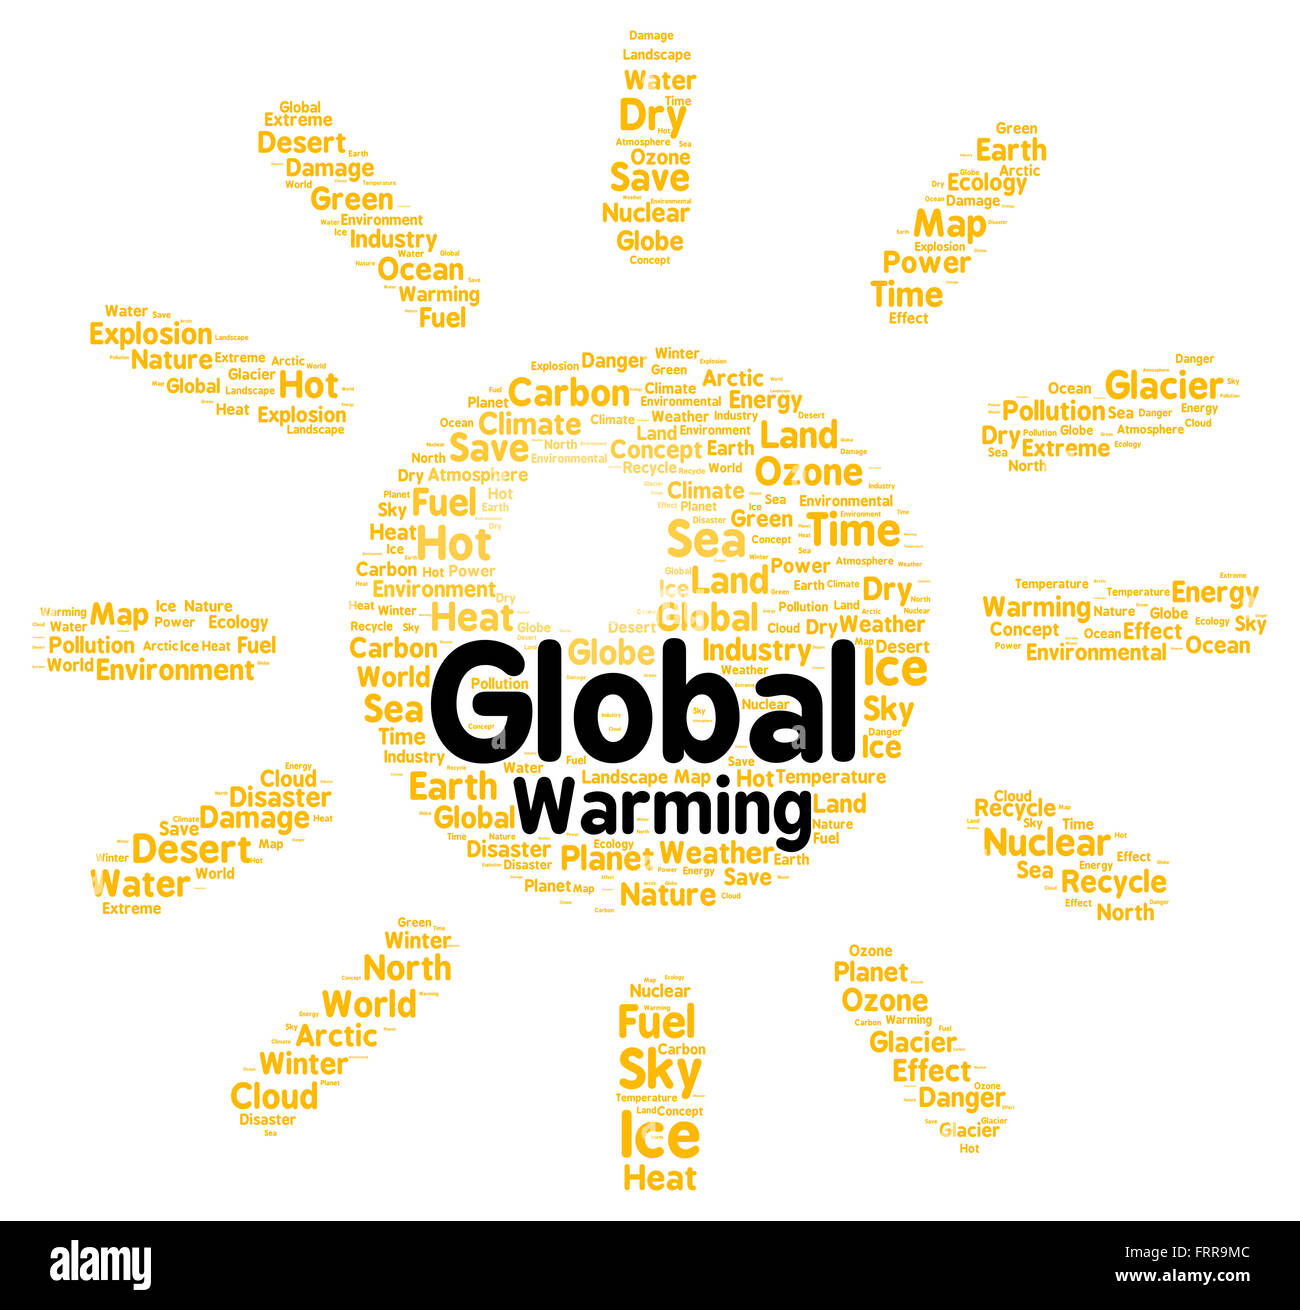 Global Warming Concept Map.Global Warming Word Cloud Shape Concept Stock Photo 100701452 Alamy